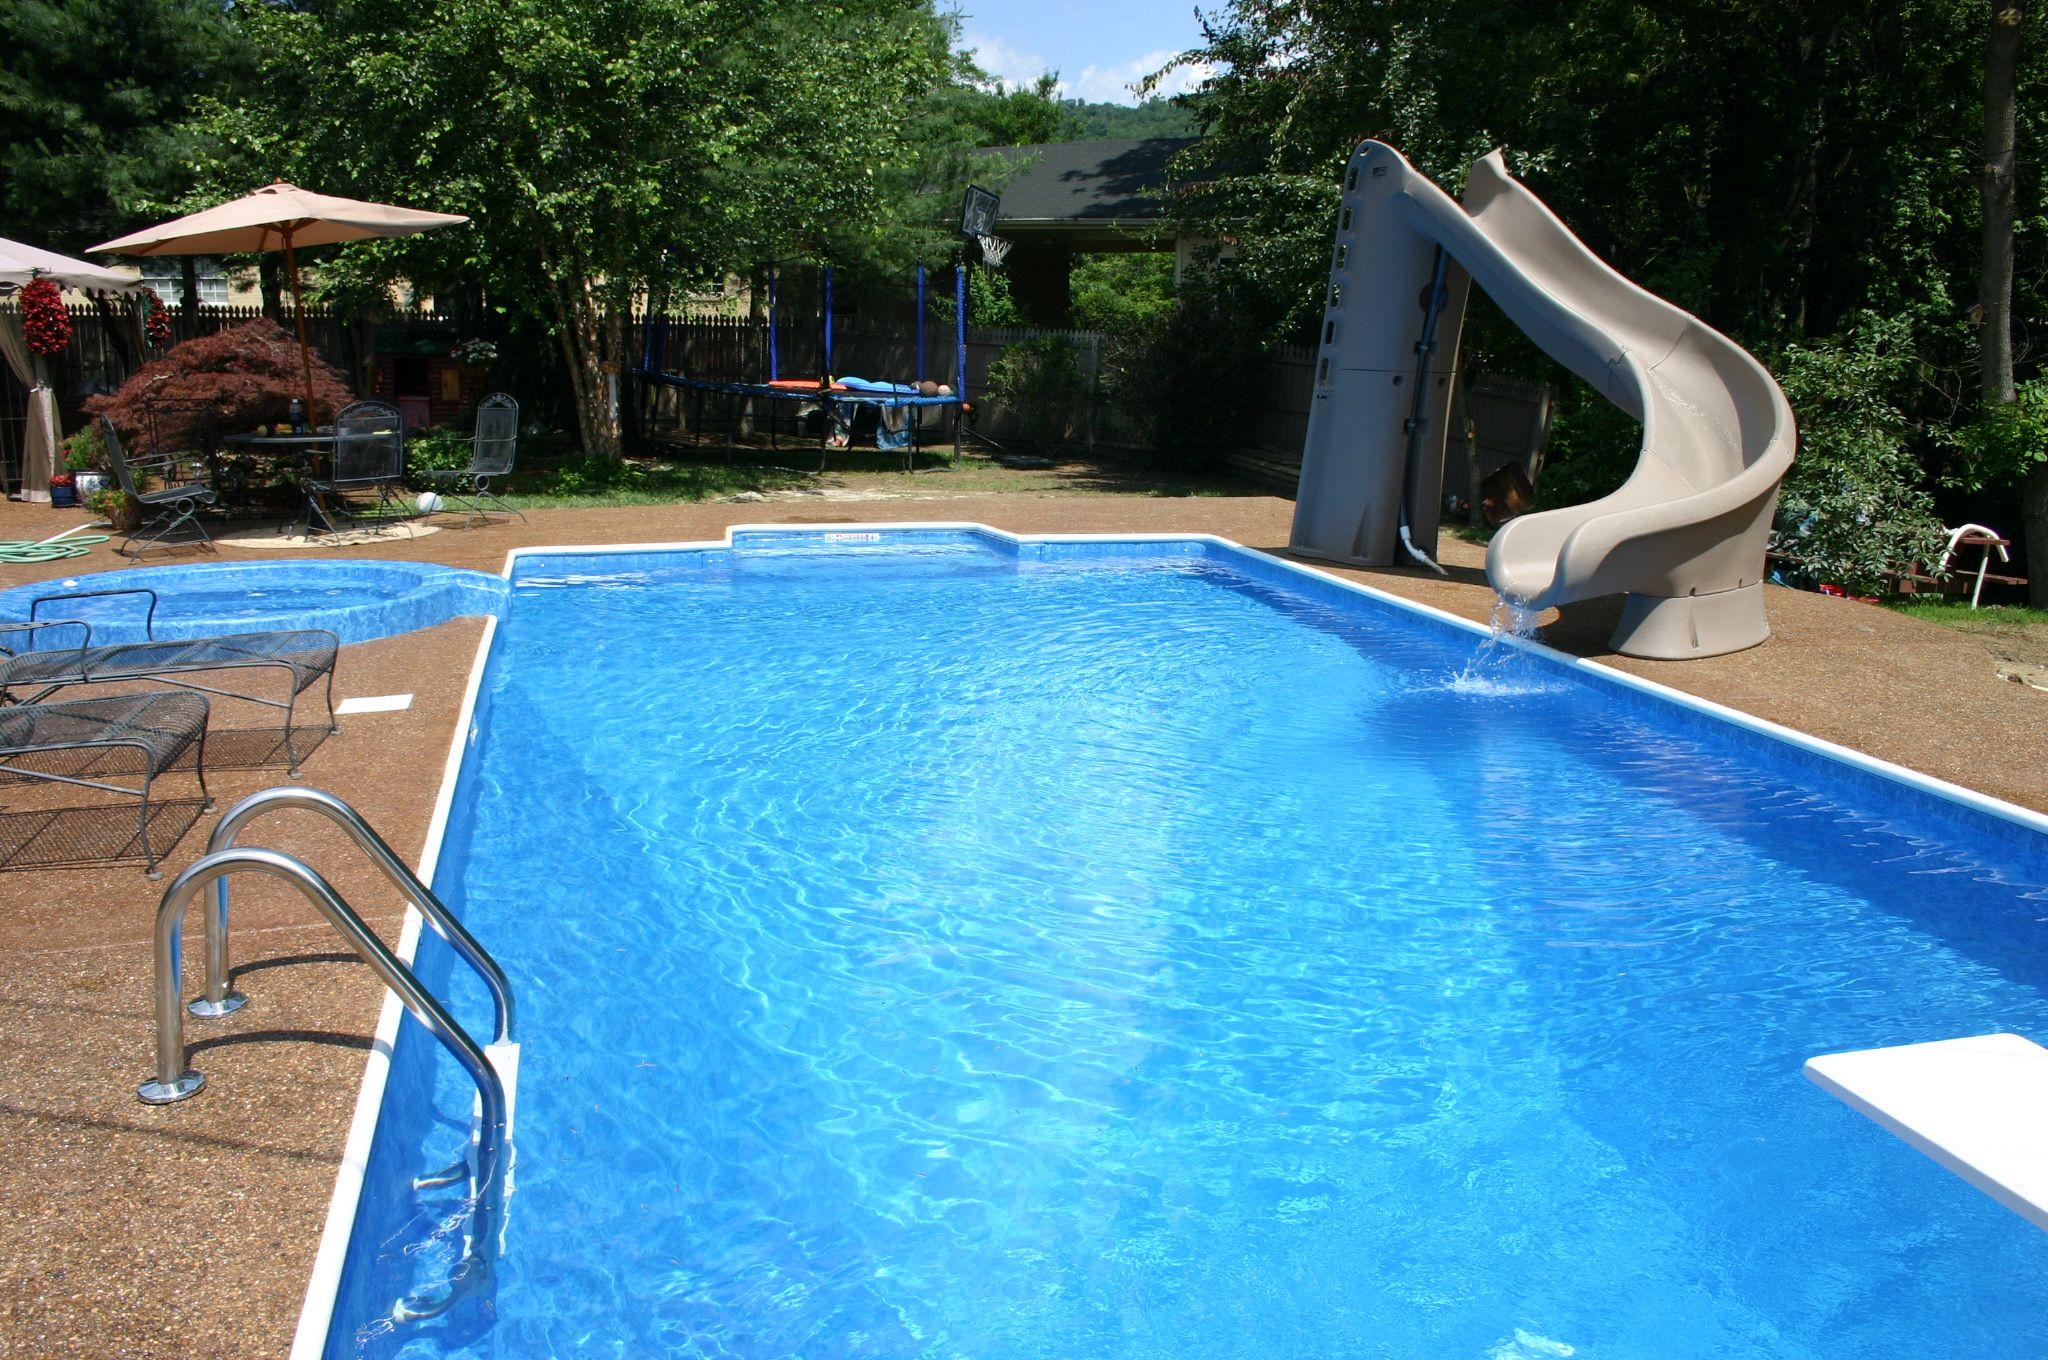 Pool Complete With Slide And Diving Board. In 2019